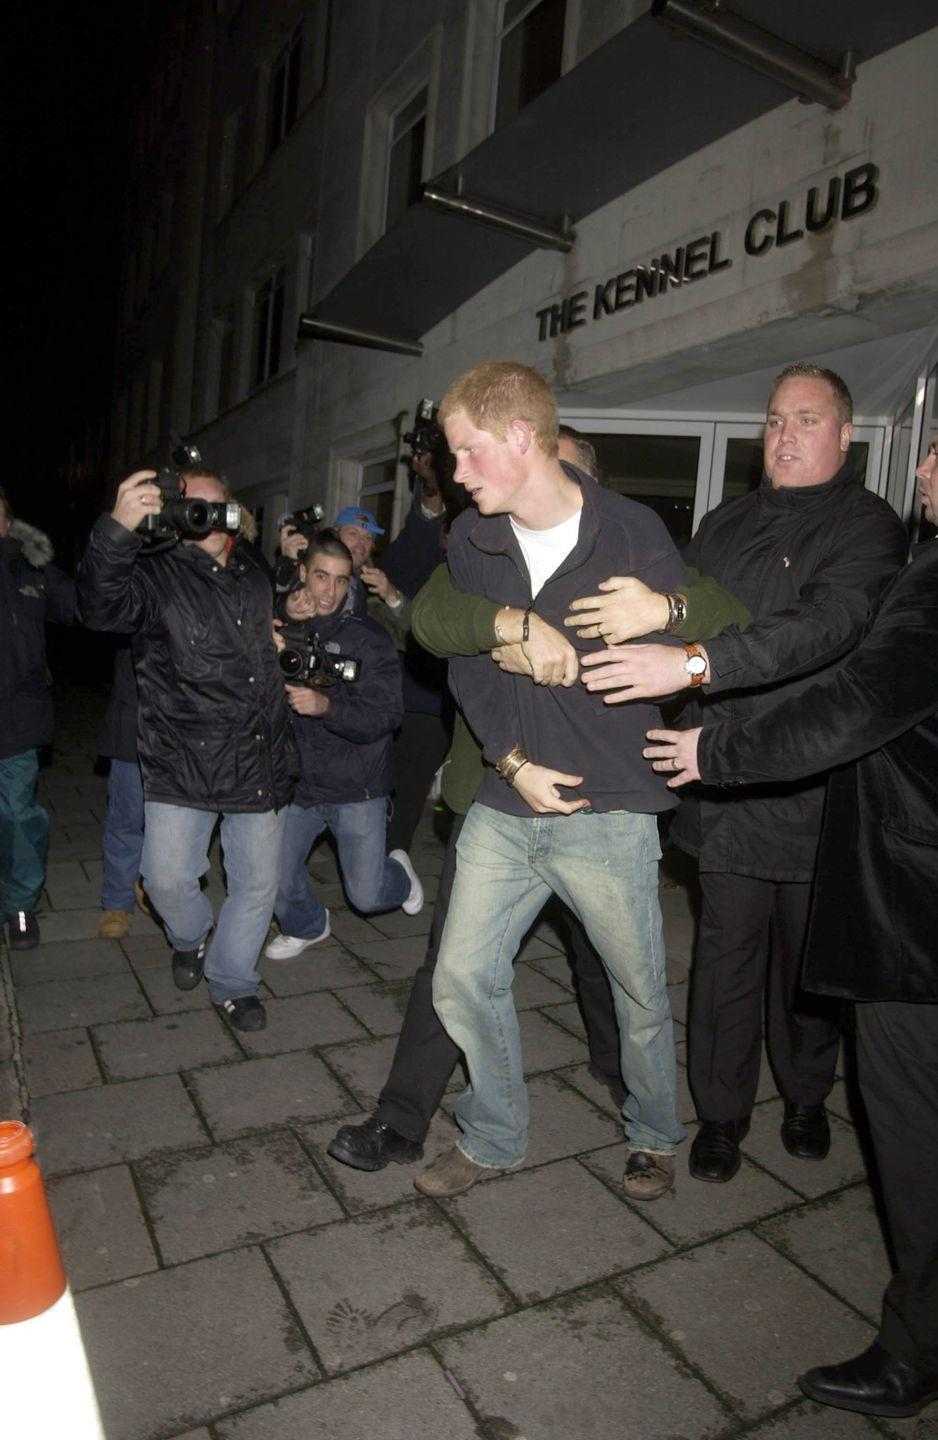 """<p>In 2004, Harry decided it was a good idea to get into a """"scuffle"""" with a group of photographers who were taking his picture as he was leaving a nightclub, and everyone ended up injured. """"Prince Harry was hit in the face by a camera as photographers crowded around him as he was getting into a car,"""" a spokesperson <a href=""""https://www.theguardian.com/media/2004/oct/21/pressandpublishing.themonarchy"""" rel=""""nofollow noopener"""" target=""""_blank"""" data-ylk=""""slk:said"""" class=""""link rapid-noclick-resp"""">said</a>. """"In pushing the camera away, it's understood that a photographer's lip was cut."""" </p>"""